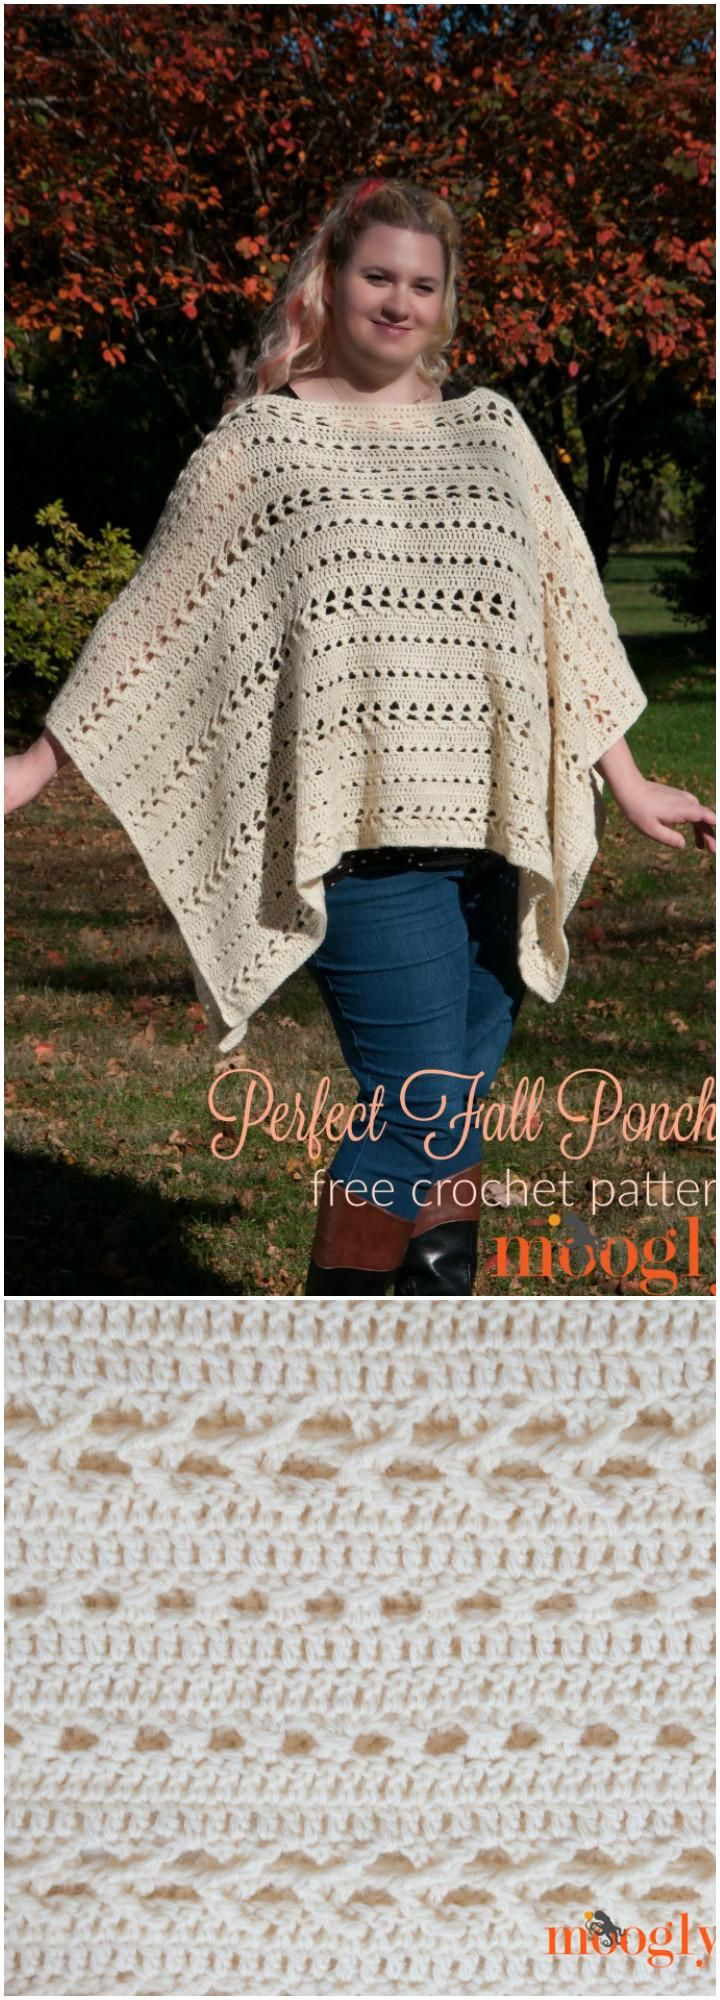 50 Free Crochet Poncho Patterns for All - Page 7 of 9 | Ponchos ...